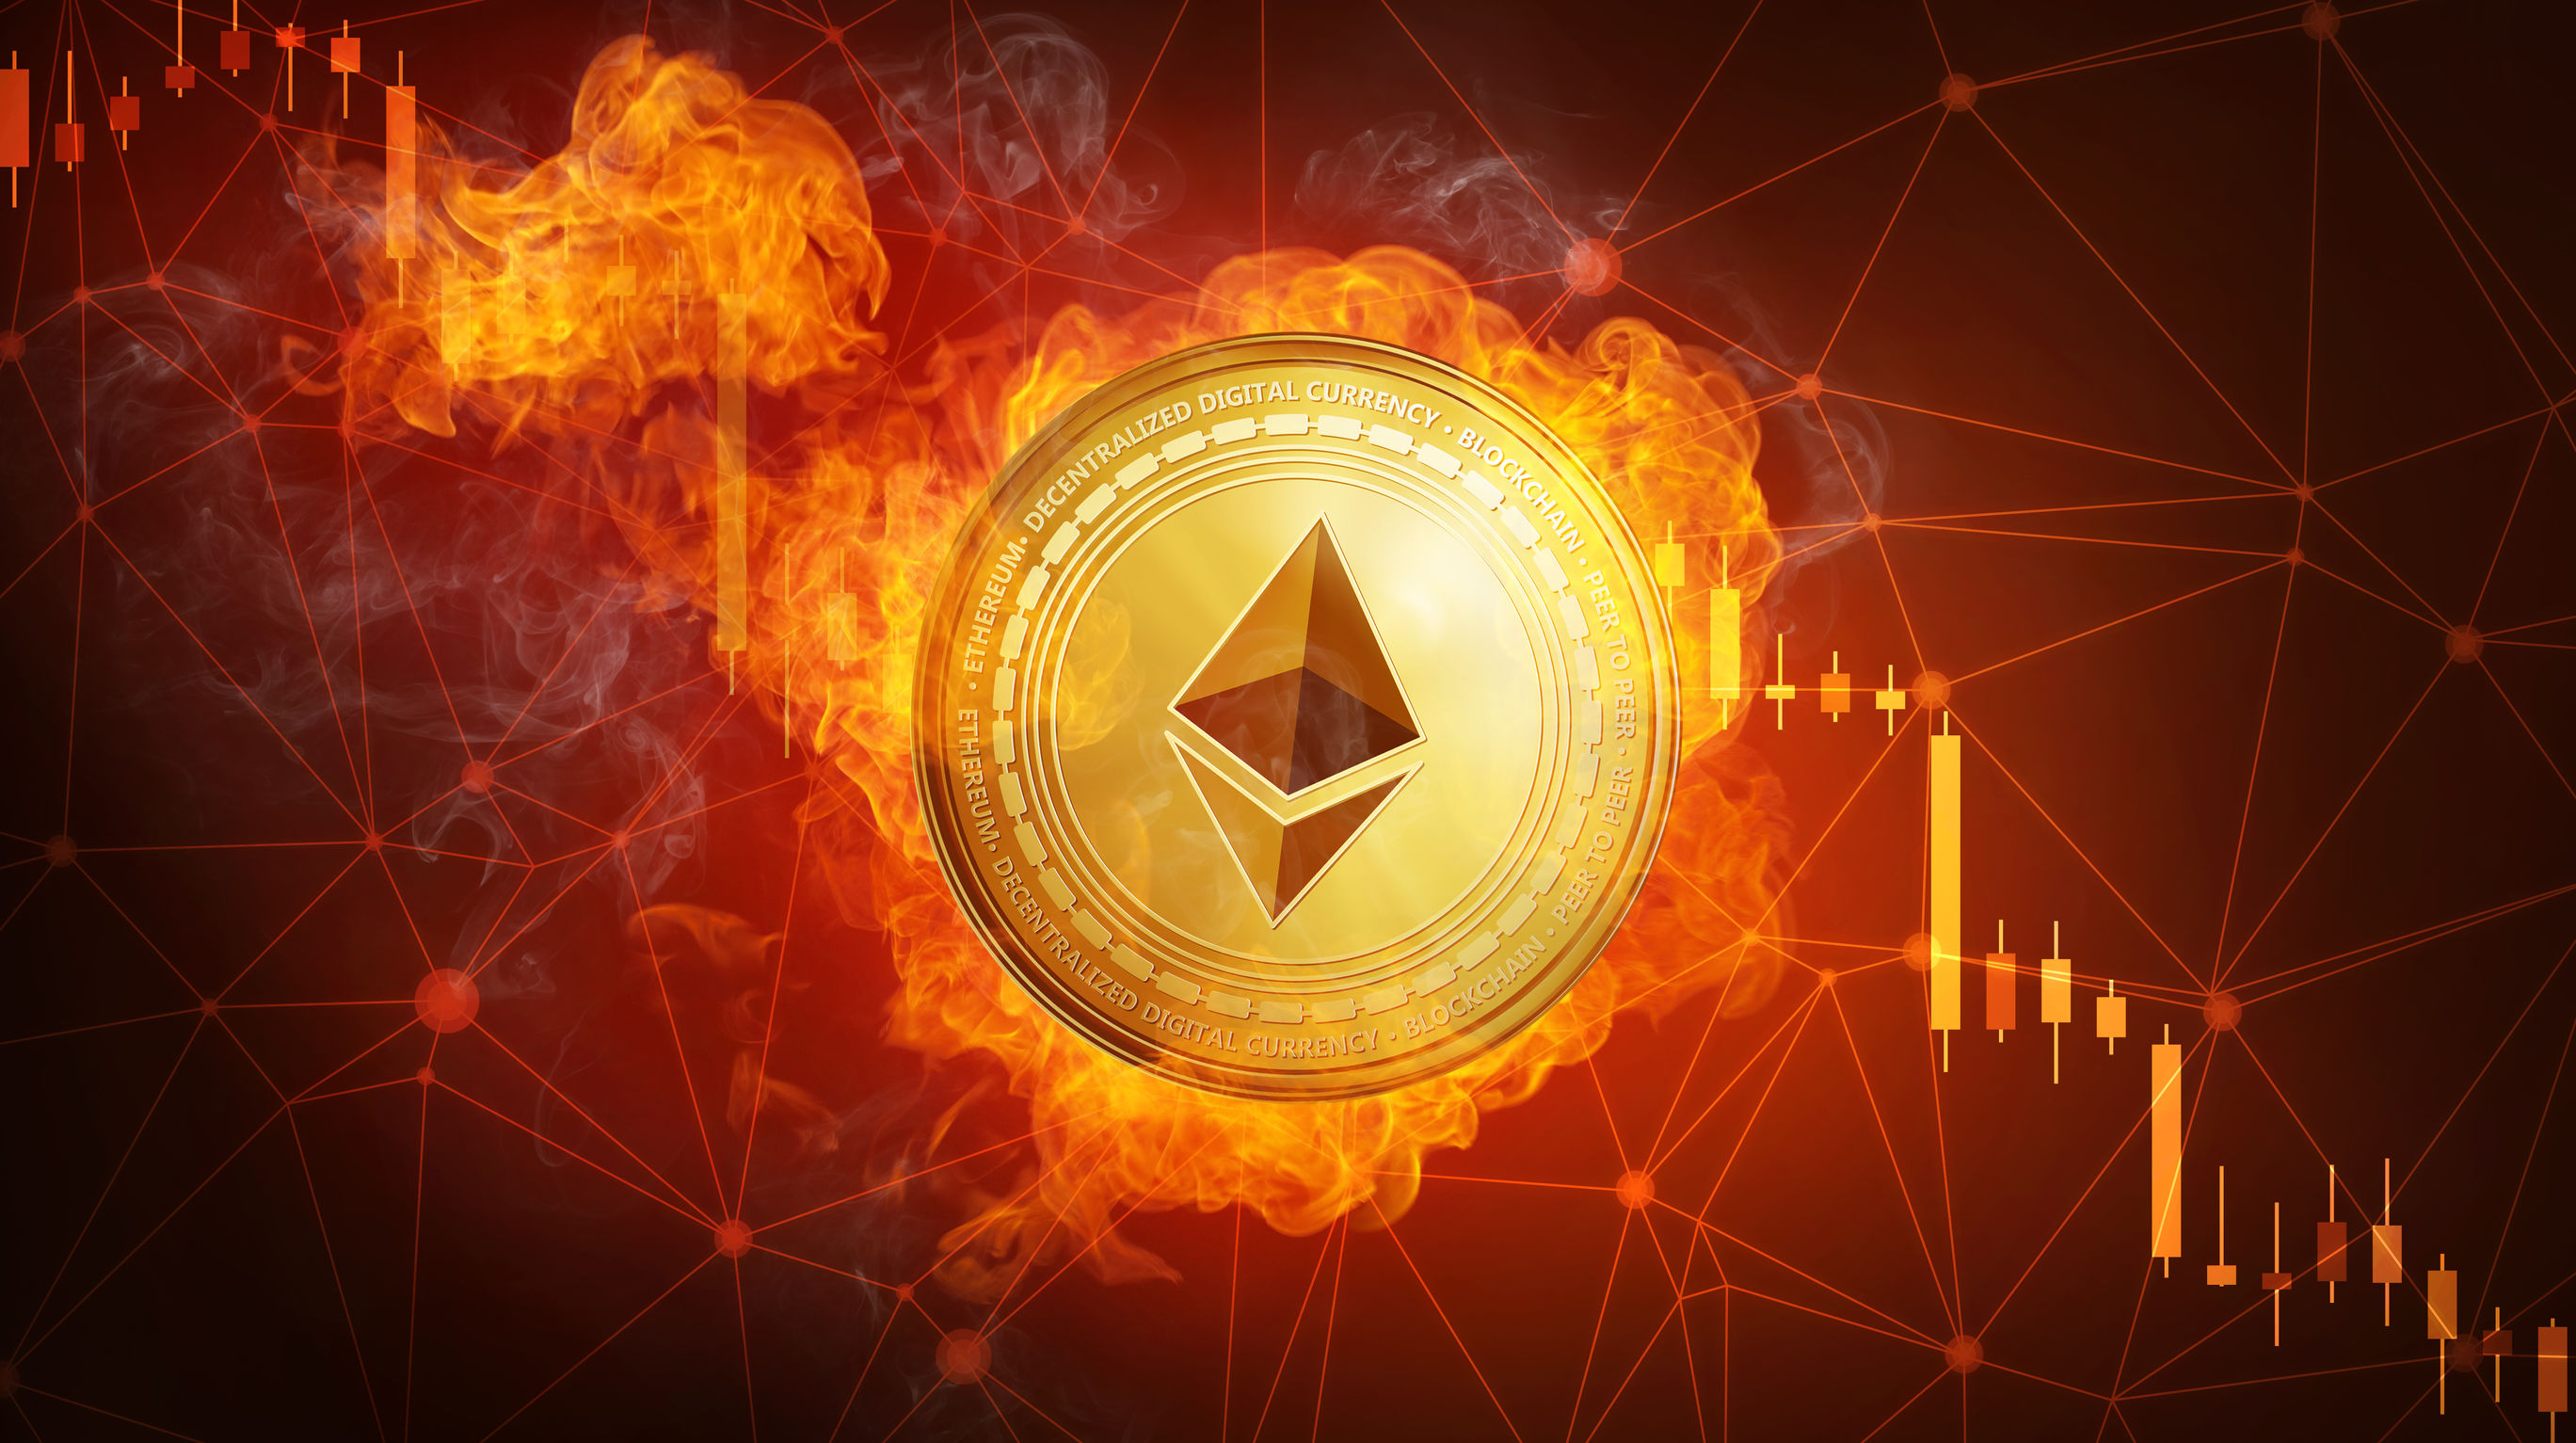 Golden Ethereum coin falling in fire flame.